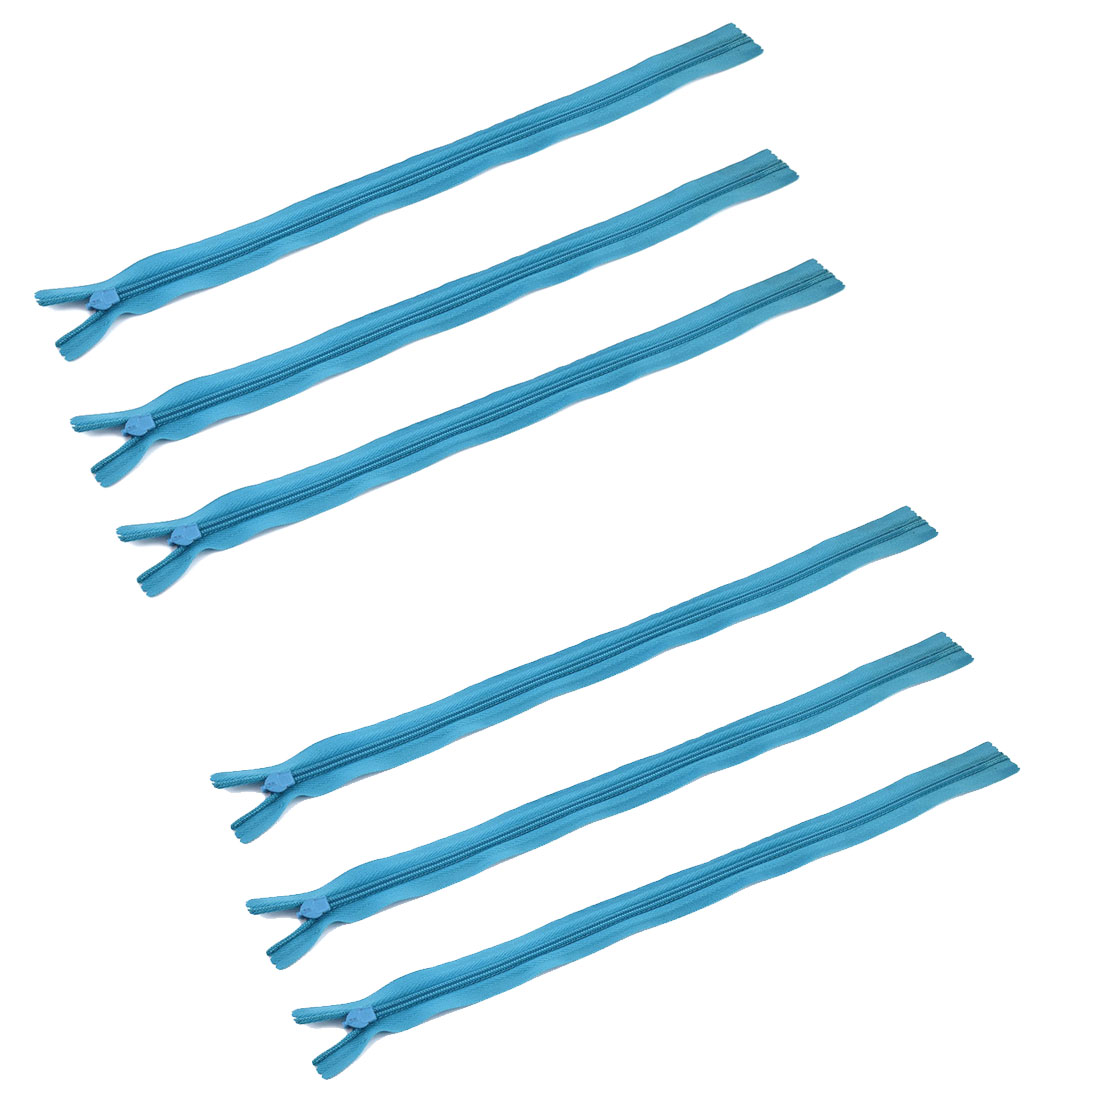 Home Tailor Nylon Dress Sewing Tool Invisible Smooth Zipper Light Blue 30cm Length 6 Pcs